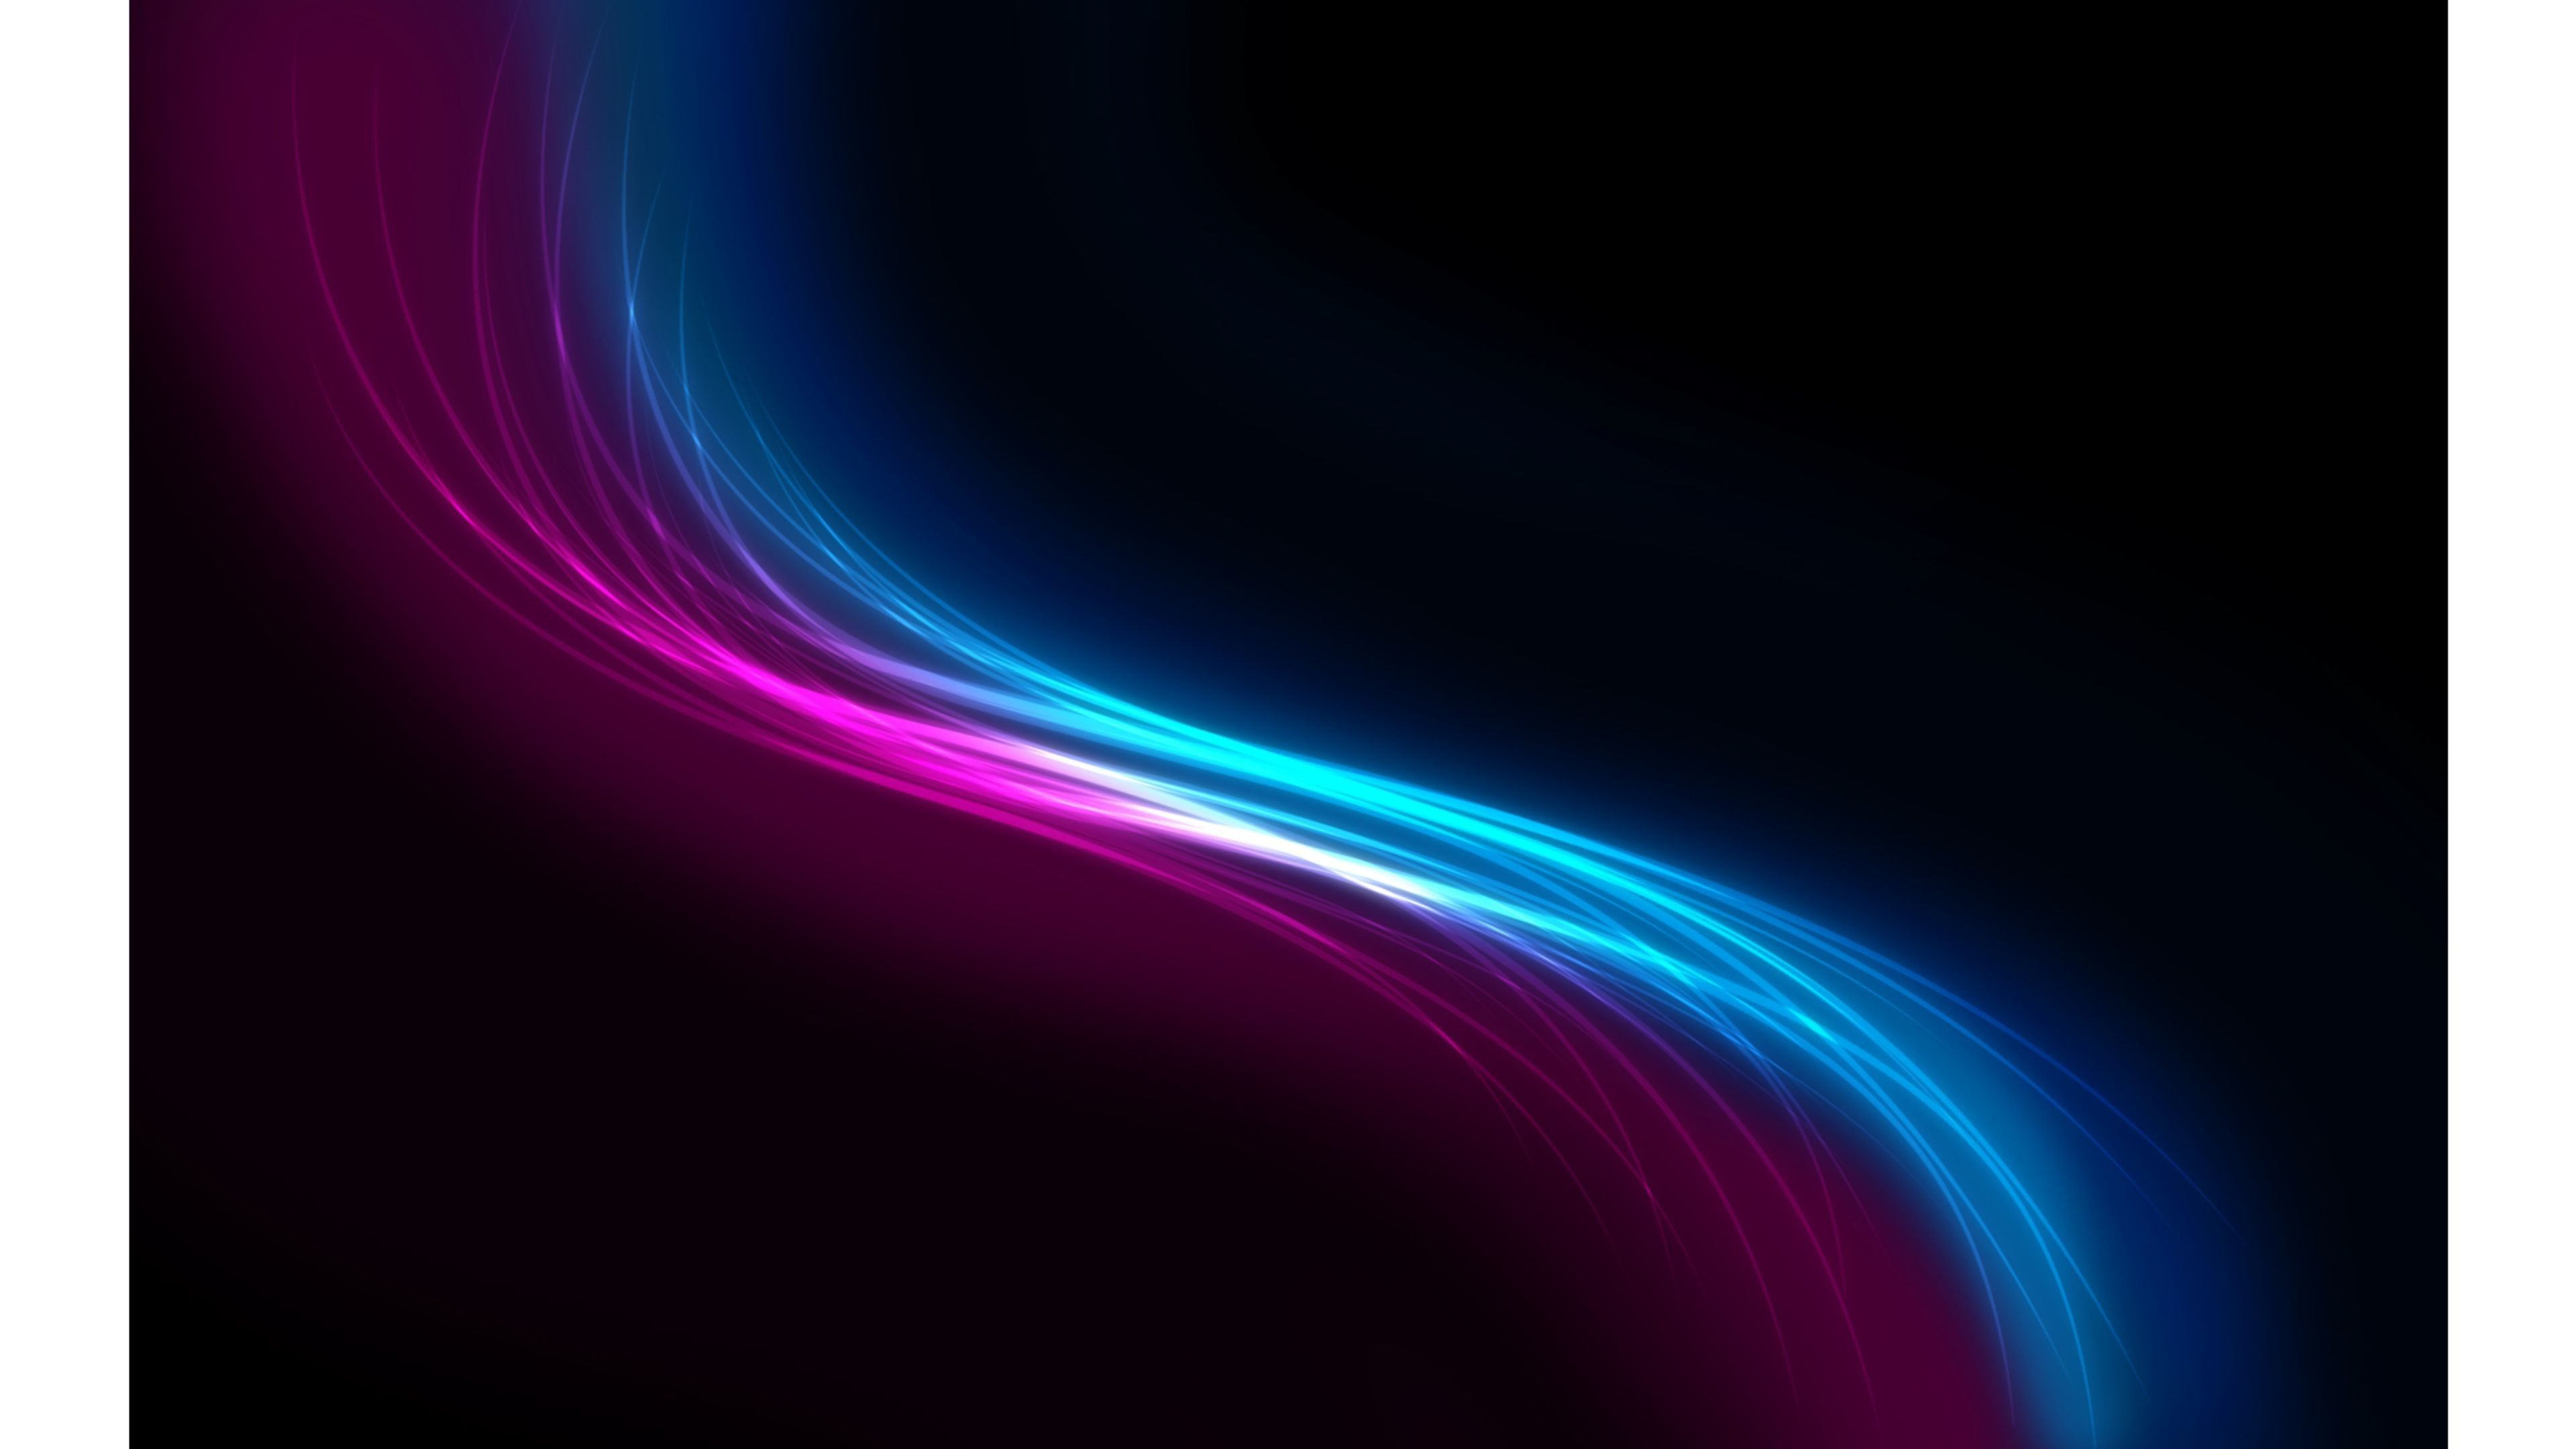 Wallpaper Collection 37 Best Free Hd Abstract Wallpaper 4k Background To Download Pc Mob In 2020 4k Background Abstract Wallpaper Iphone Wallpaper